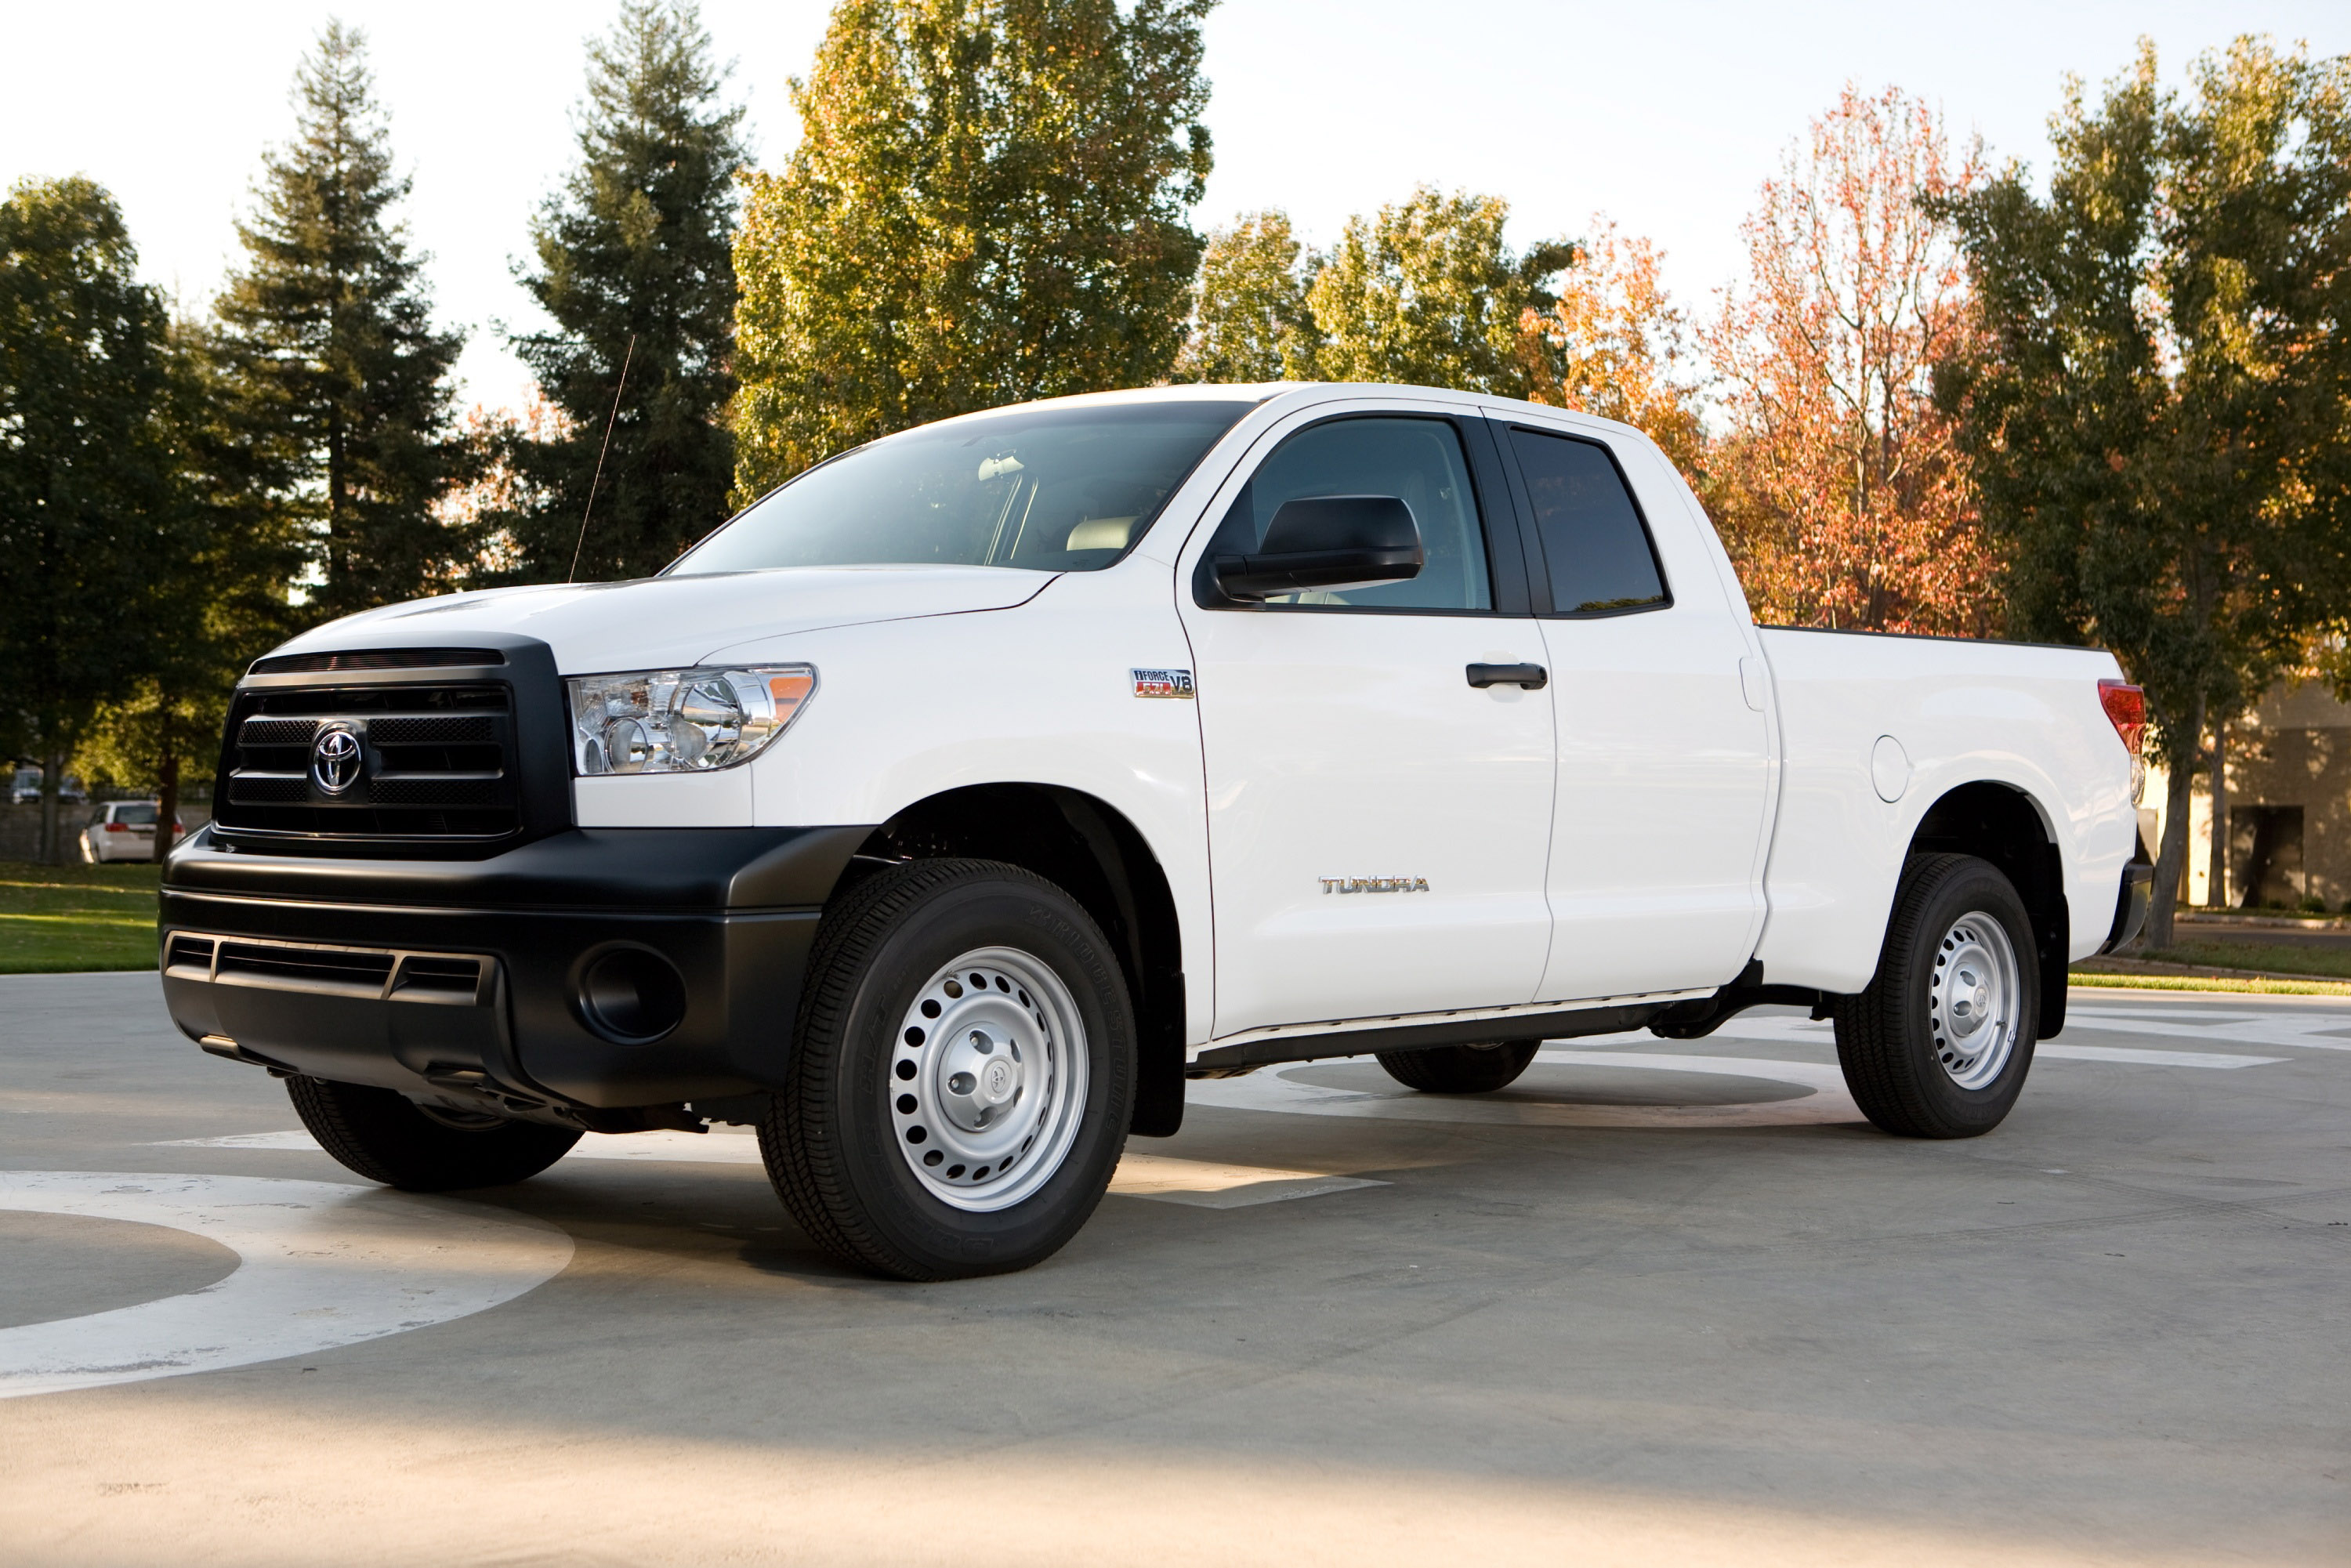 toyota to display 2010 tundra pickup with new work truck package at 2009 san diego auto show. Black Bedroom Furniture Sets. Home Design Ideas